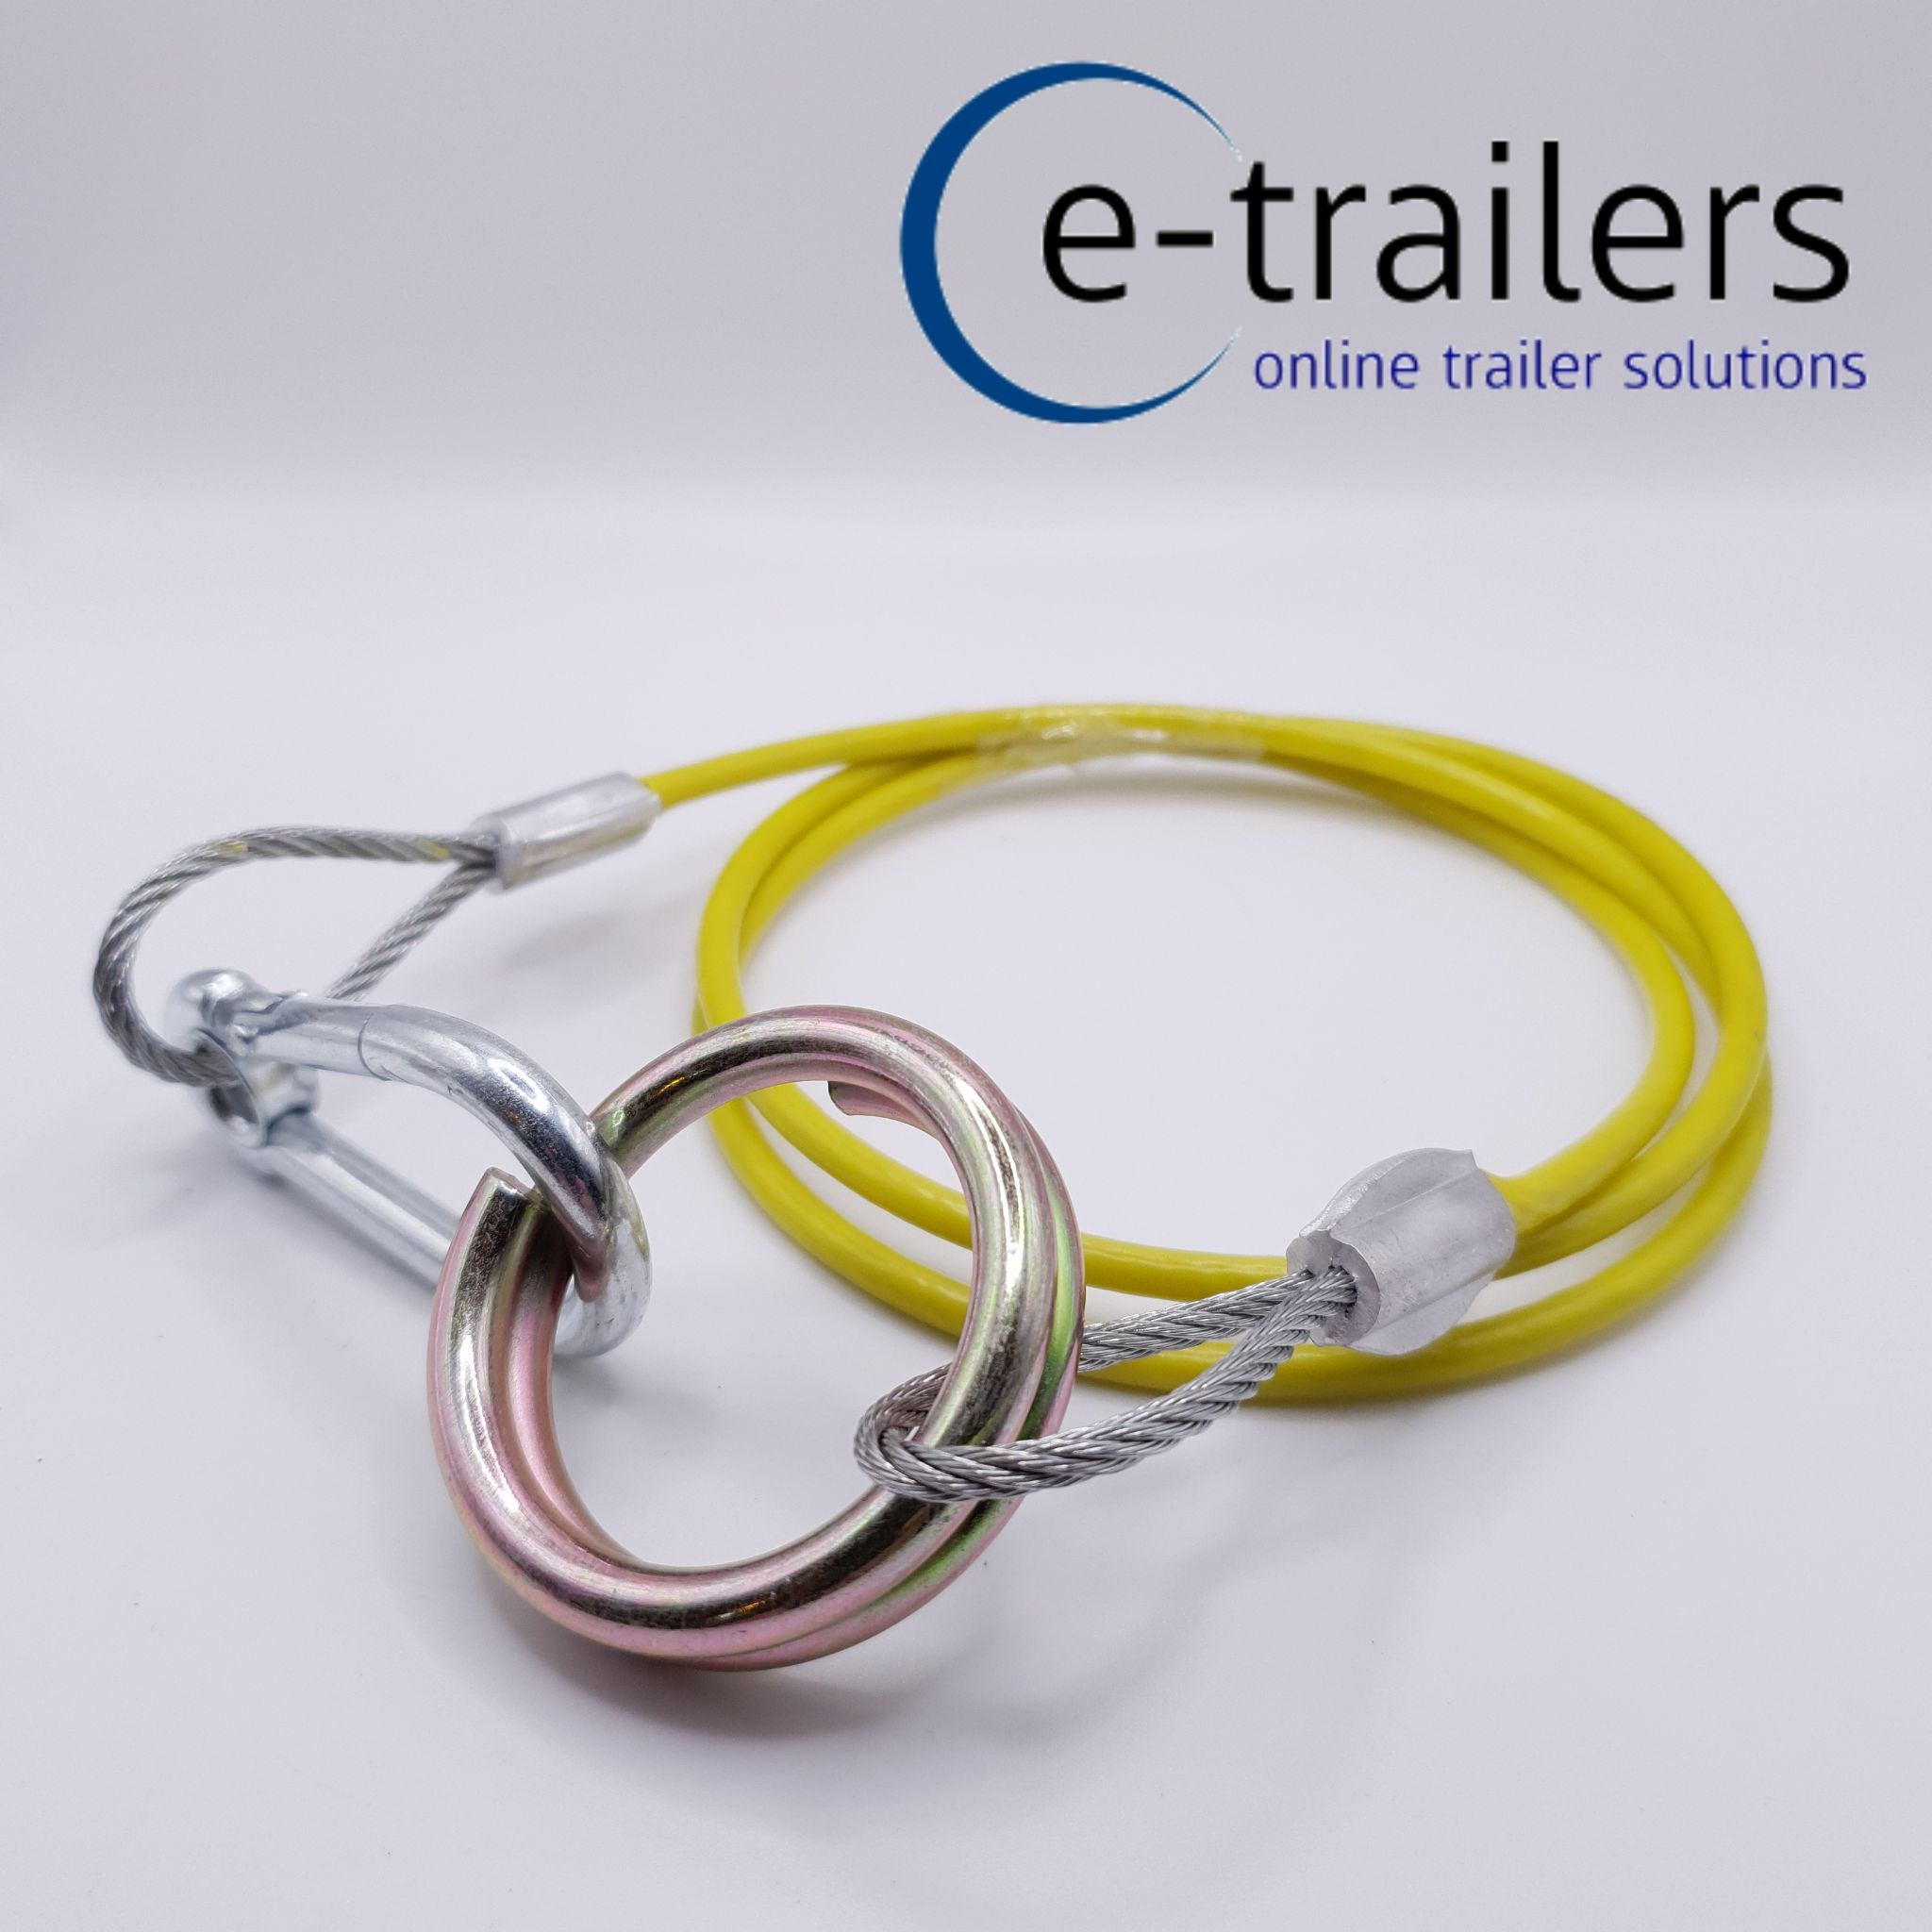 TRAILER BREAKAWAY CABLE FOR TOWING-HEAVY DUTY- QUICK RELEASE- IFOR WILLIAMS 2X TRAILER BREAKAWAY CABLE FOR TOWING- HEAVY DUTY QUICK RELEASE IFOR WILLIAMS yellow hi viz